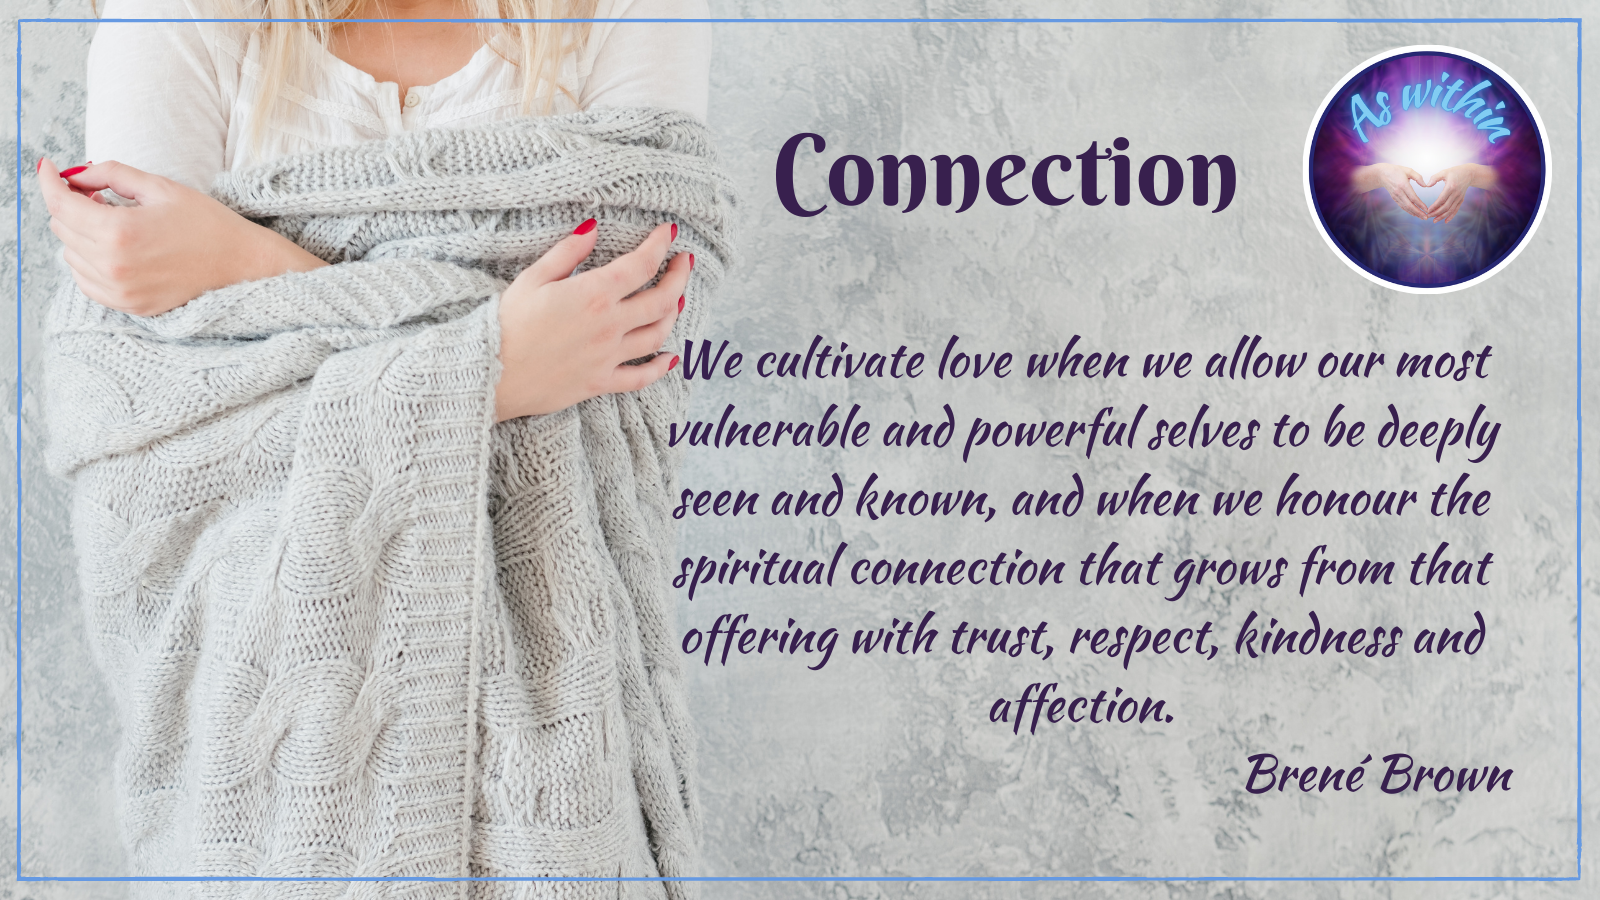 We cultivate love when we allow our most vulnerable and powerful selves to be deeply seen and known, and when we honour the spiritual connection that grows from that offering with trust, respect, kindness and affection, Brené Brown, as within